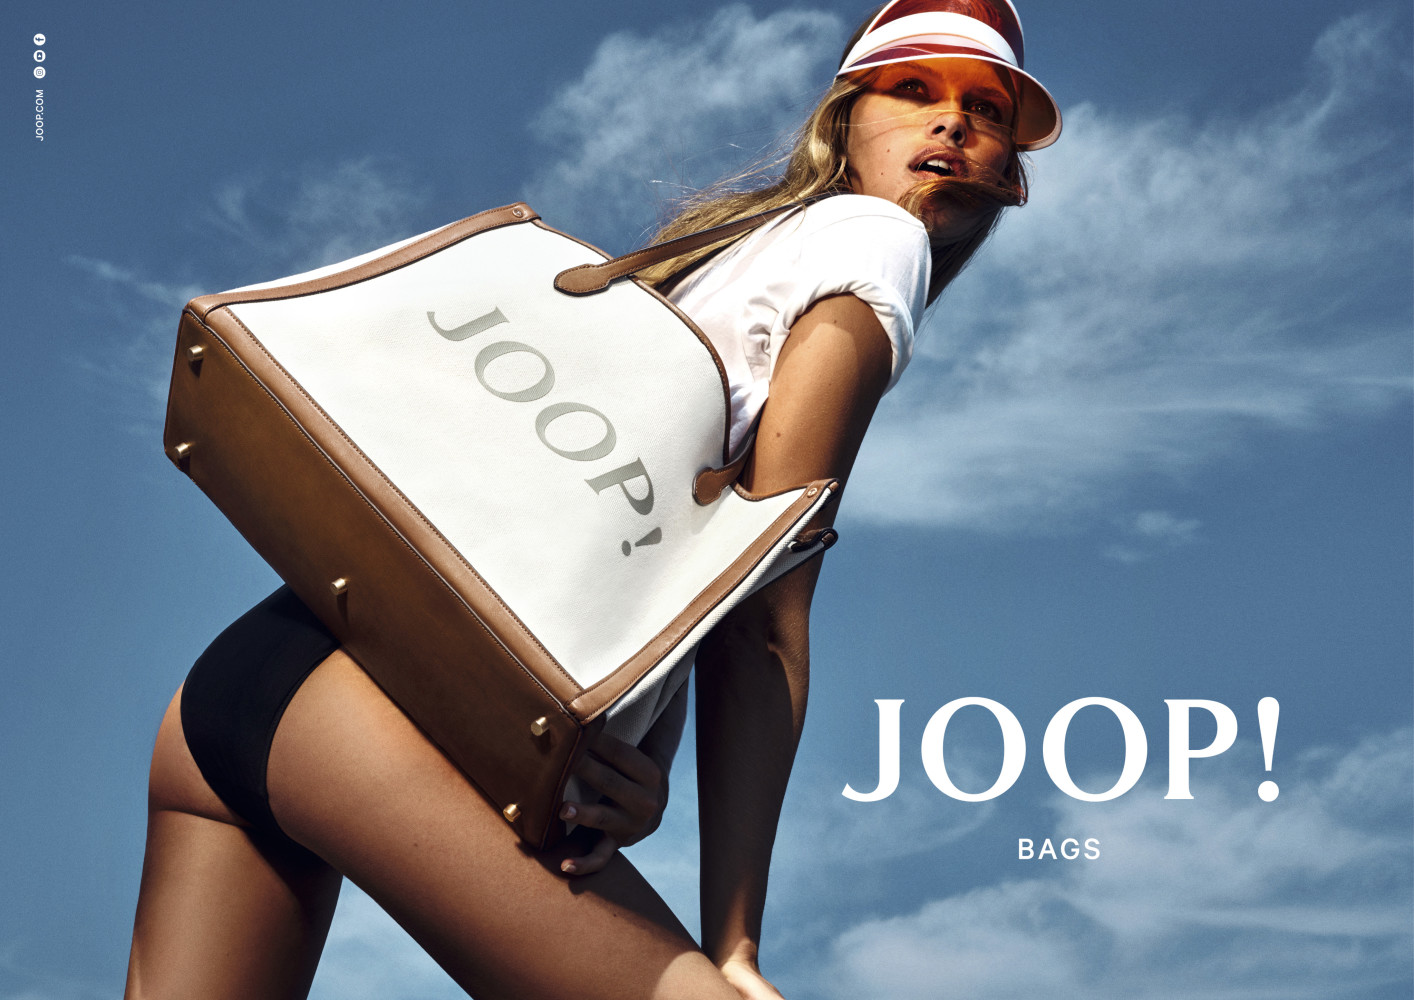 KIM for JOOP! campaign